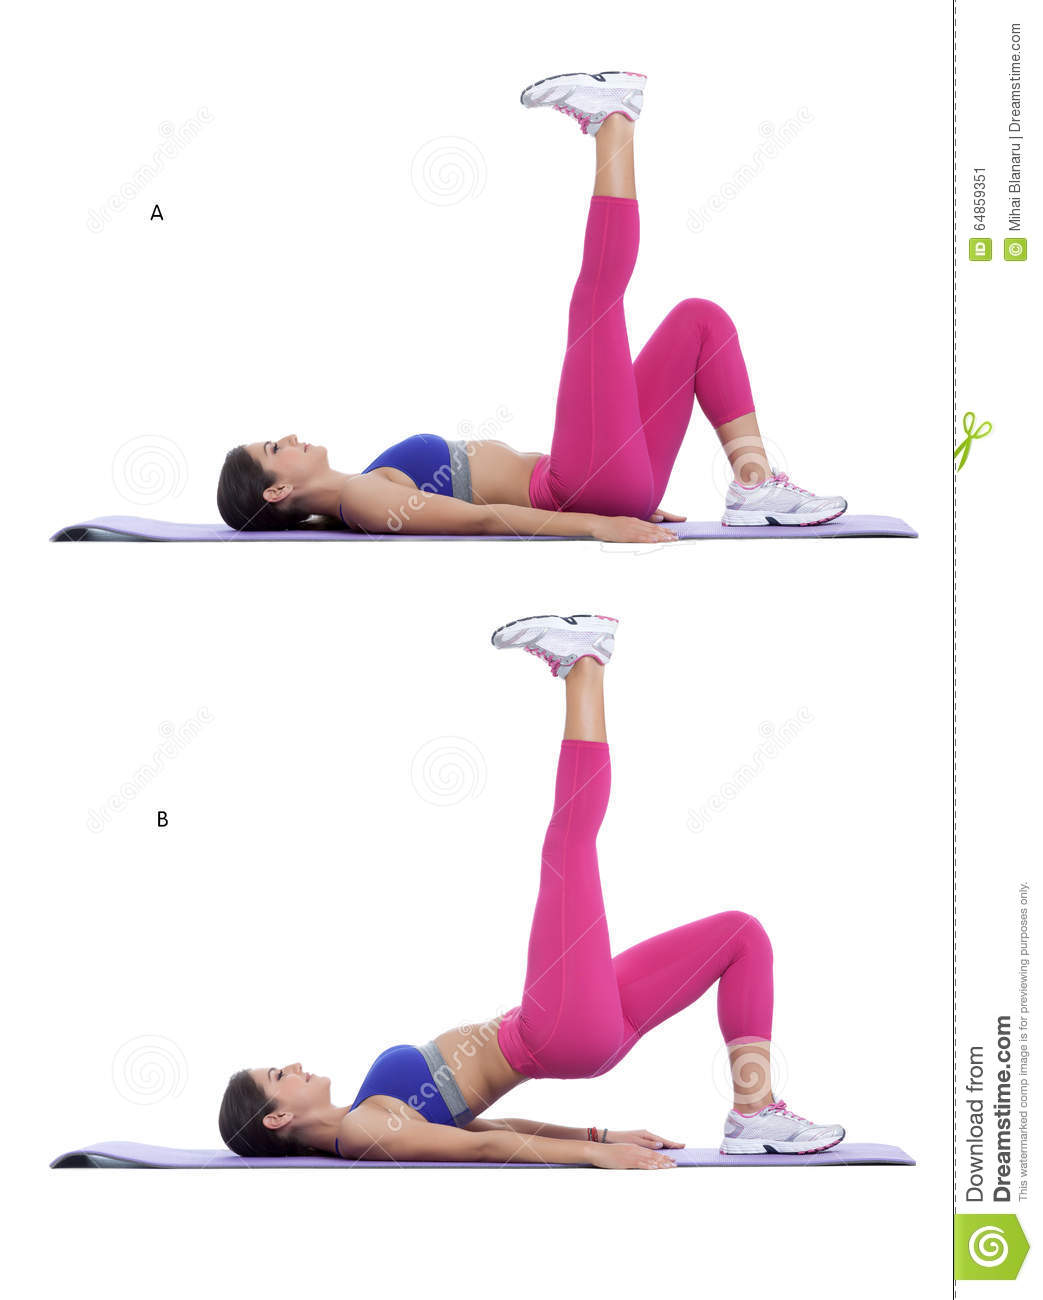 Foot-Elevated Hip Thrust stock image. Image of training ...